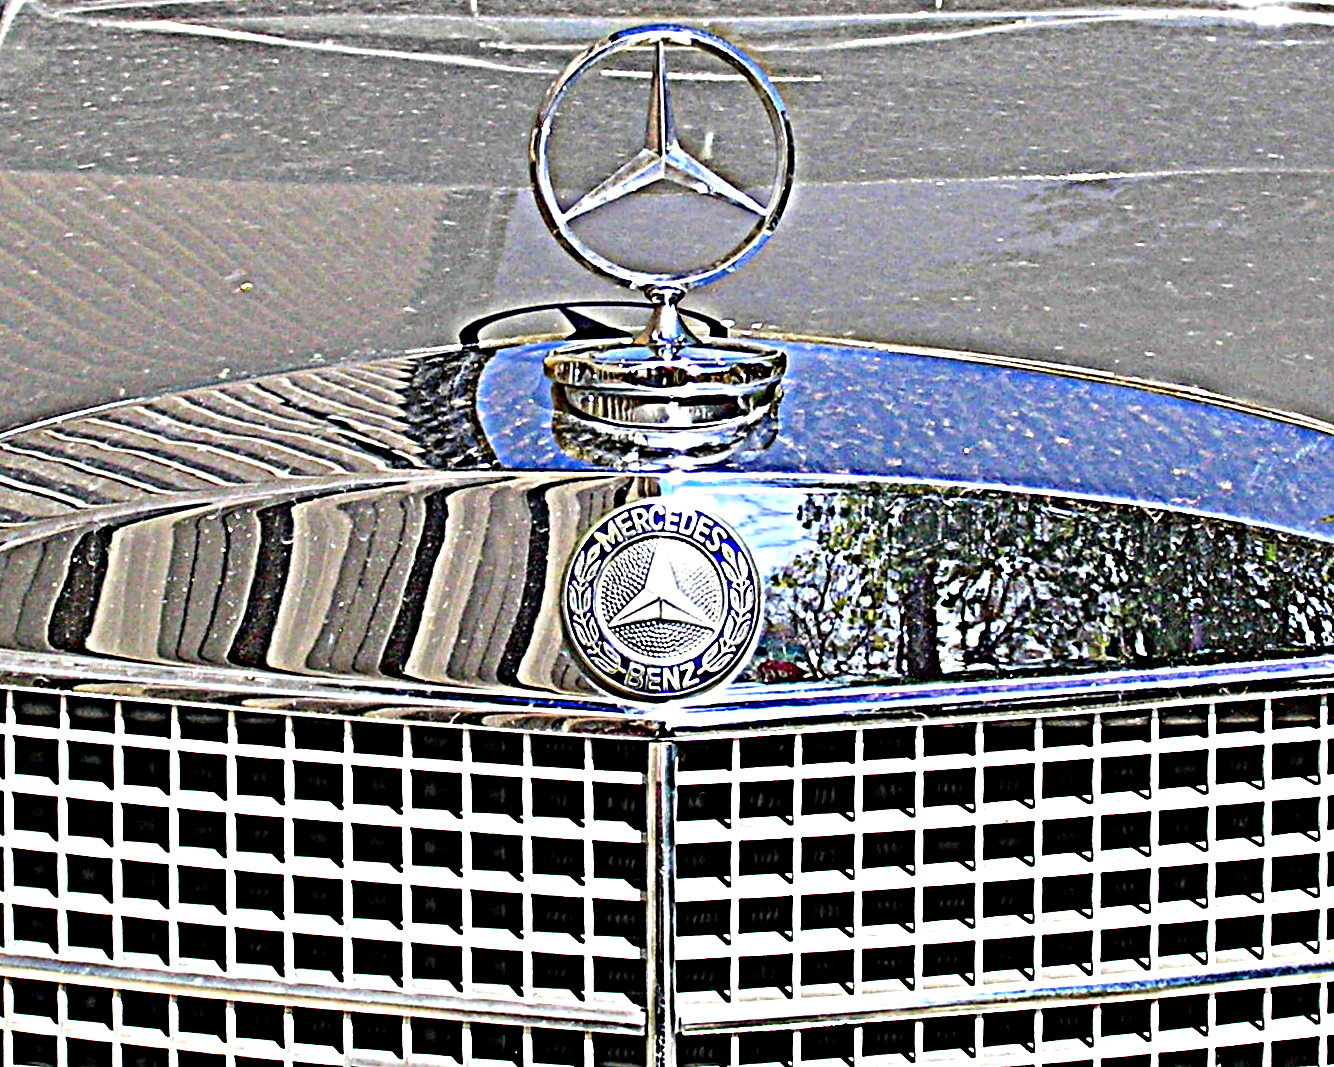 Mercedes benz 400 class questions how much does it cost for How much does it cost to service a mercedes benz